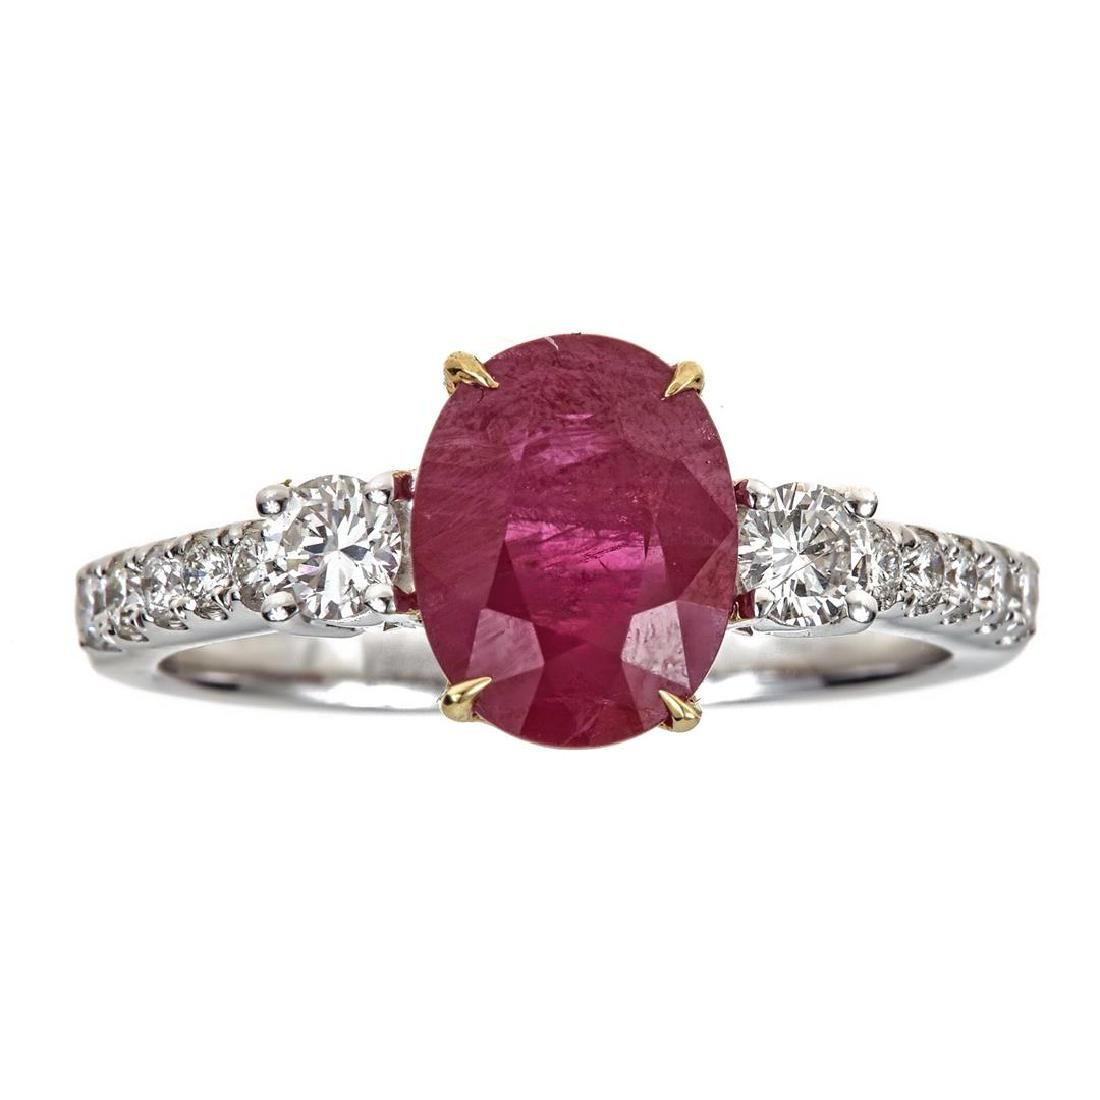 2.99 ctw Ruby and Diamond Ring - 18KT White and Yellow